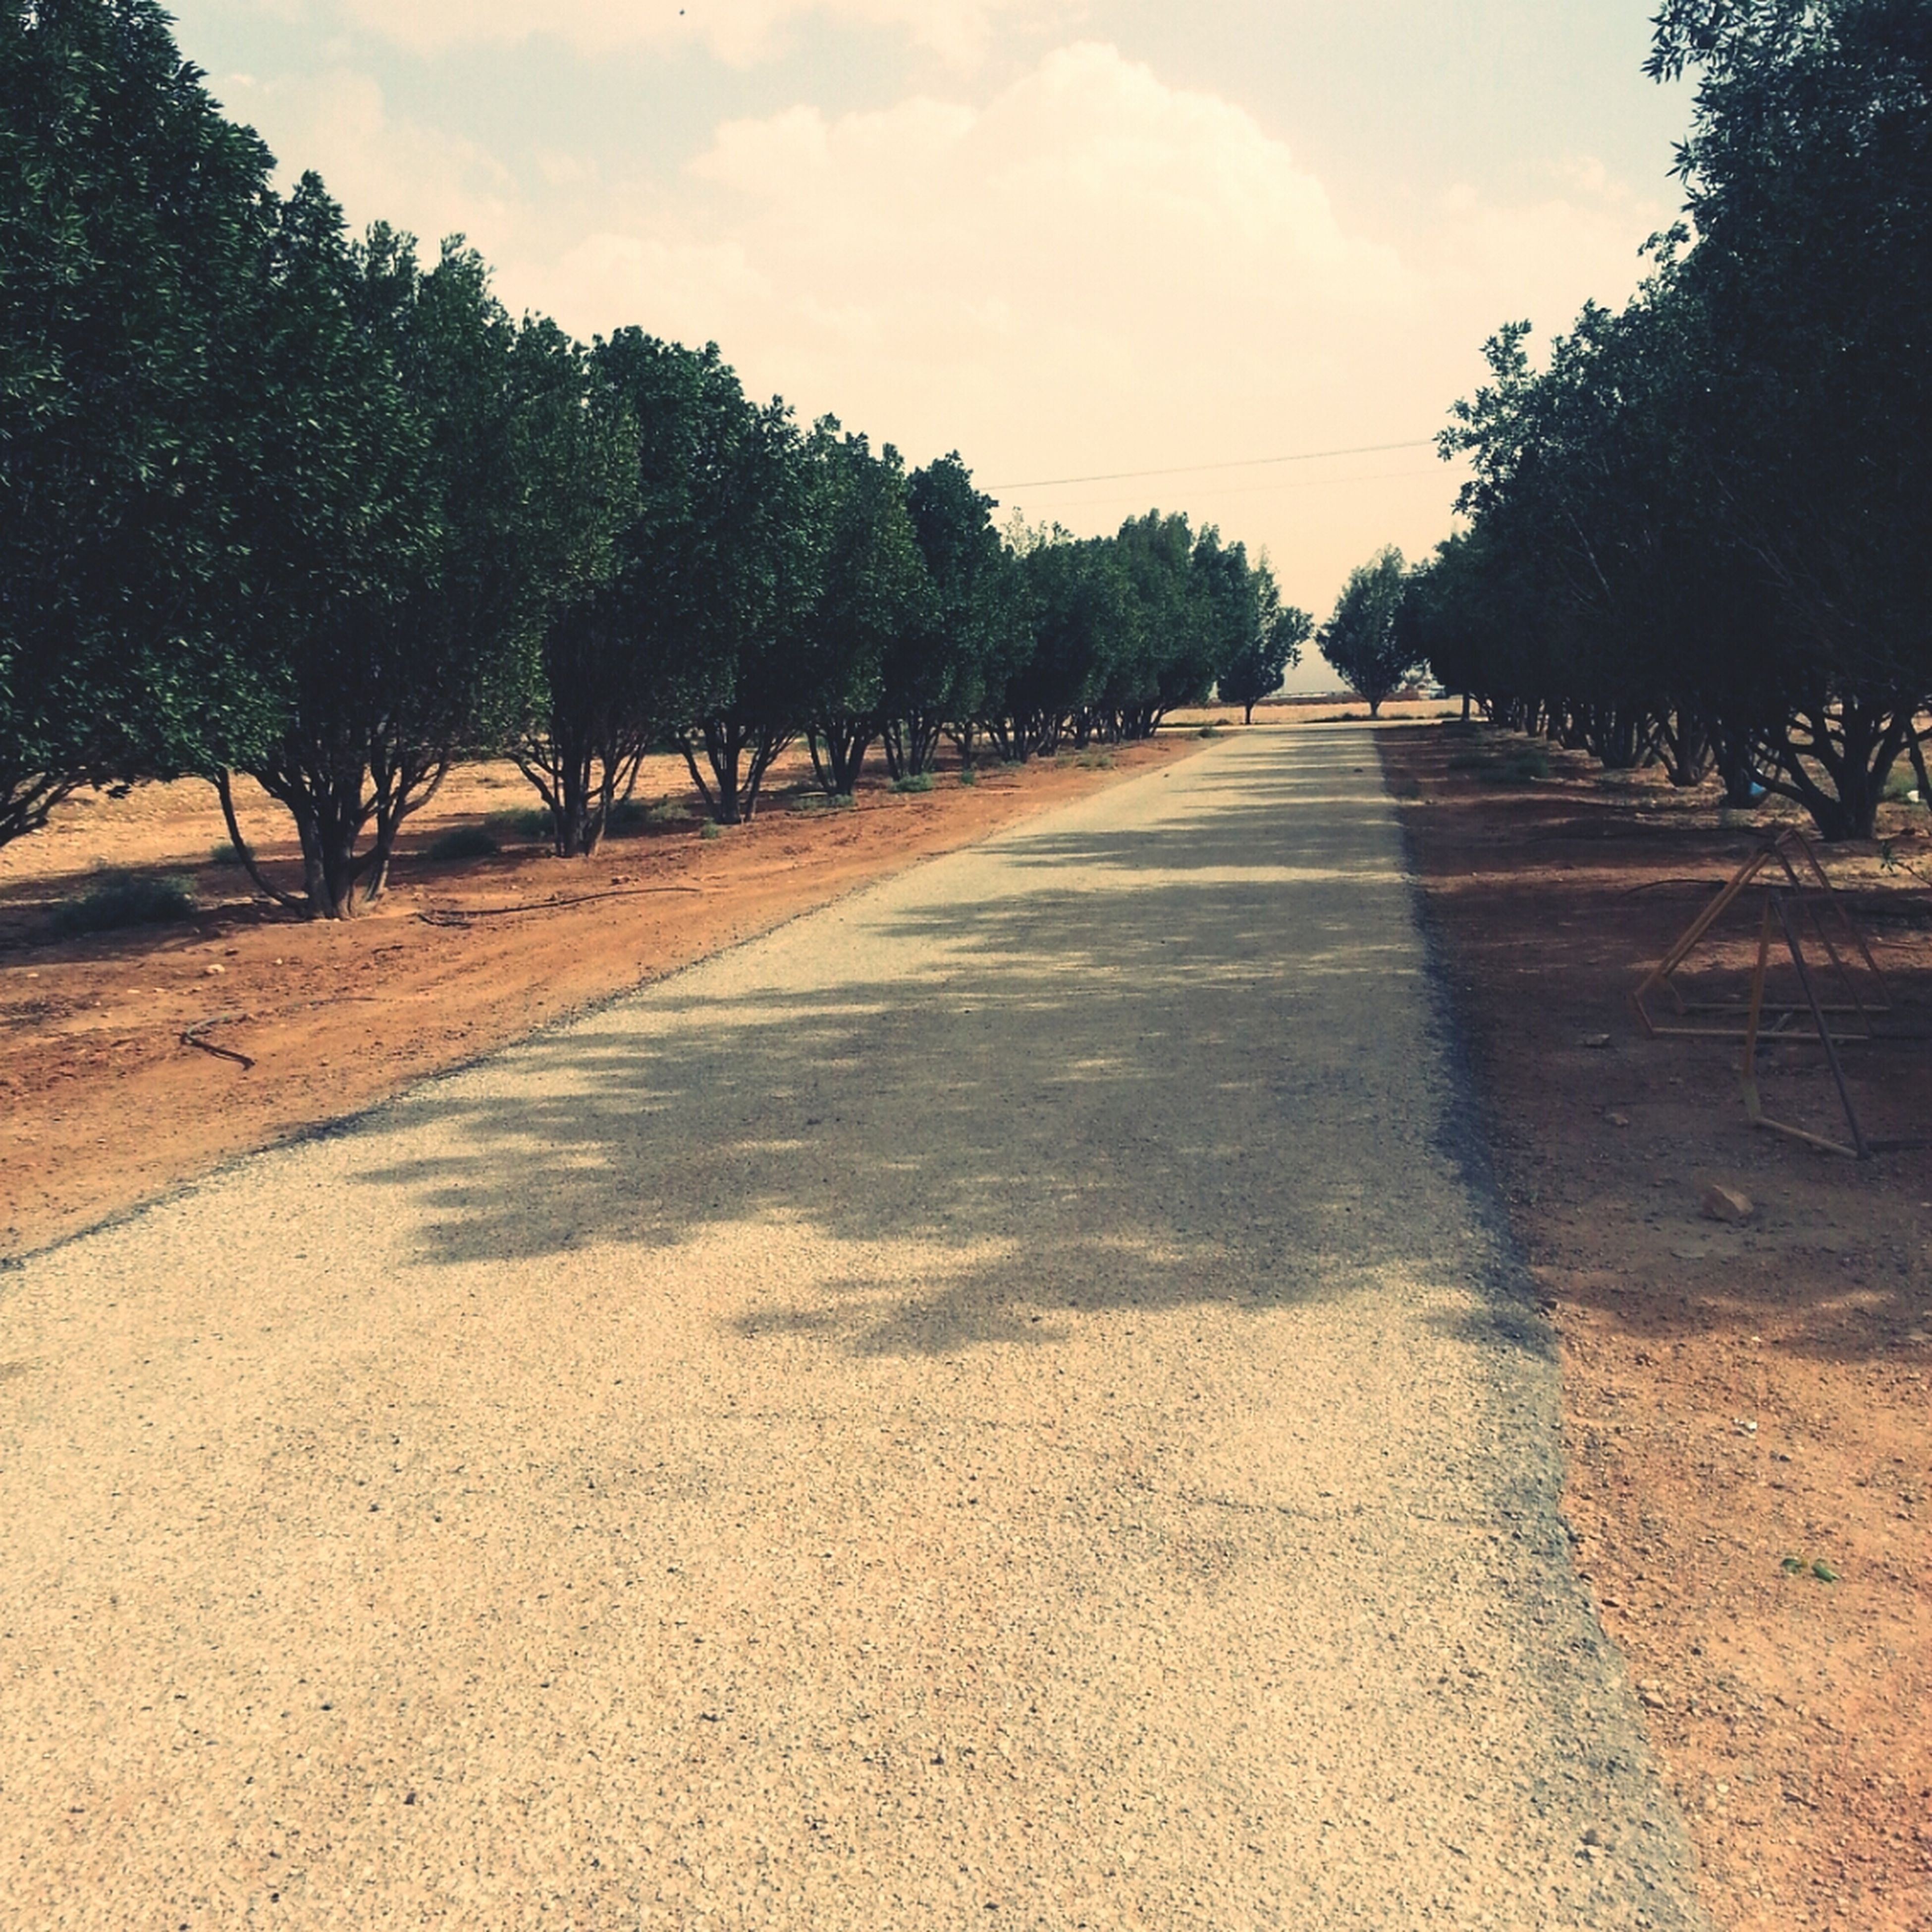 the way forward, tree, diminishing perspective, sky, road, vanishing point, transportation, tranquility, tranquil scene, surface level, dirt road, nature, empty road, sunlight, landscape, asphalt, cloud - sky, street, scenics, growth